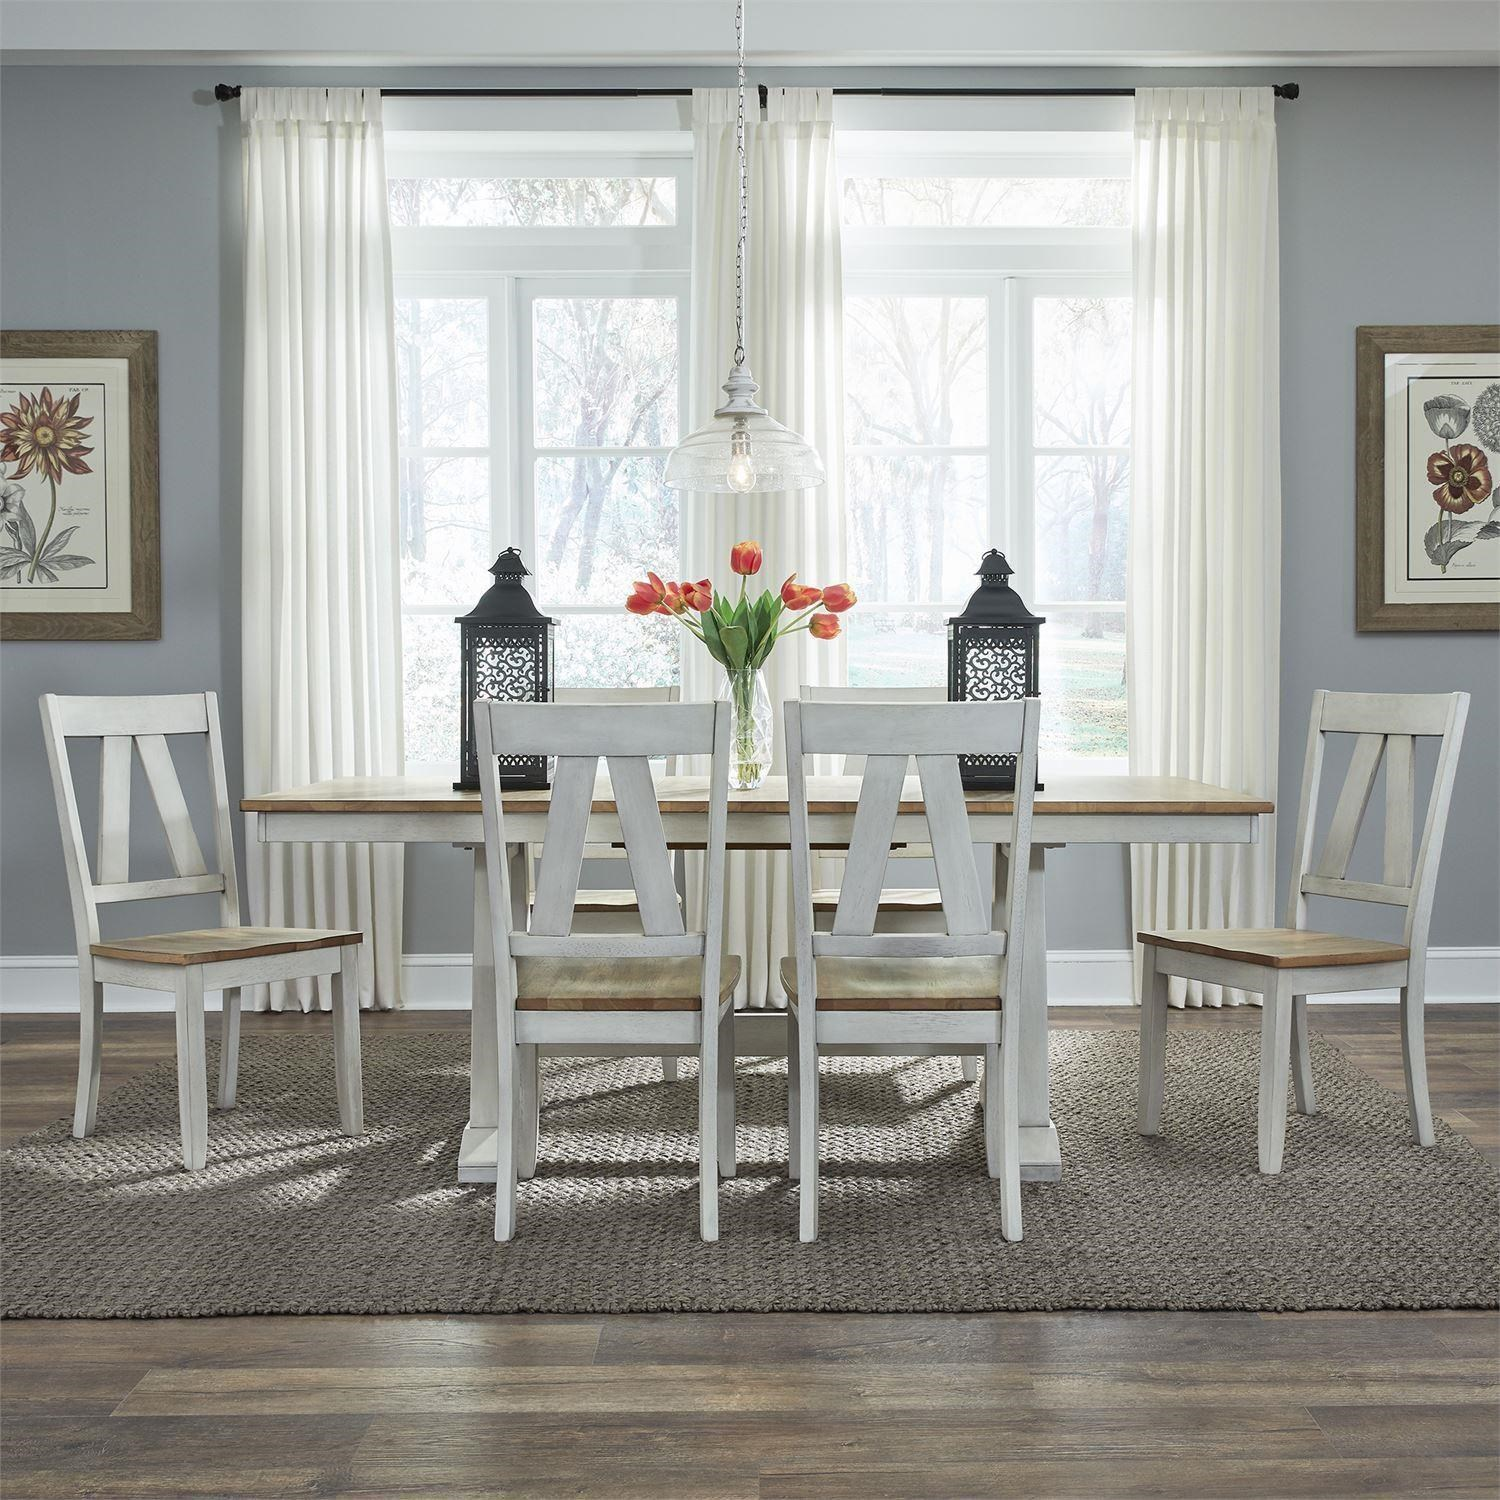 Lindsey Farm 5 Piece Dining Set by Liberty Furniture at Darvin Furniture